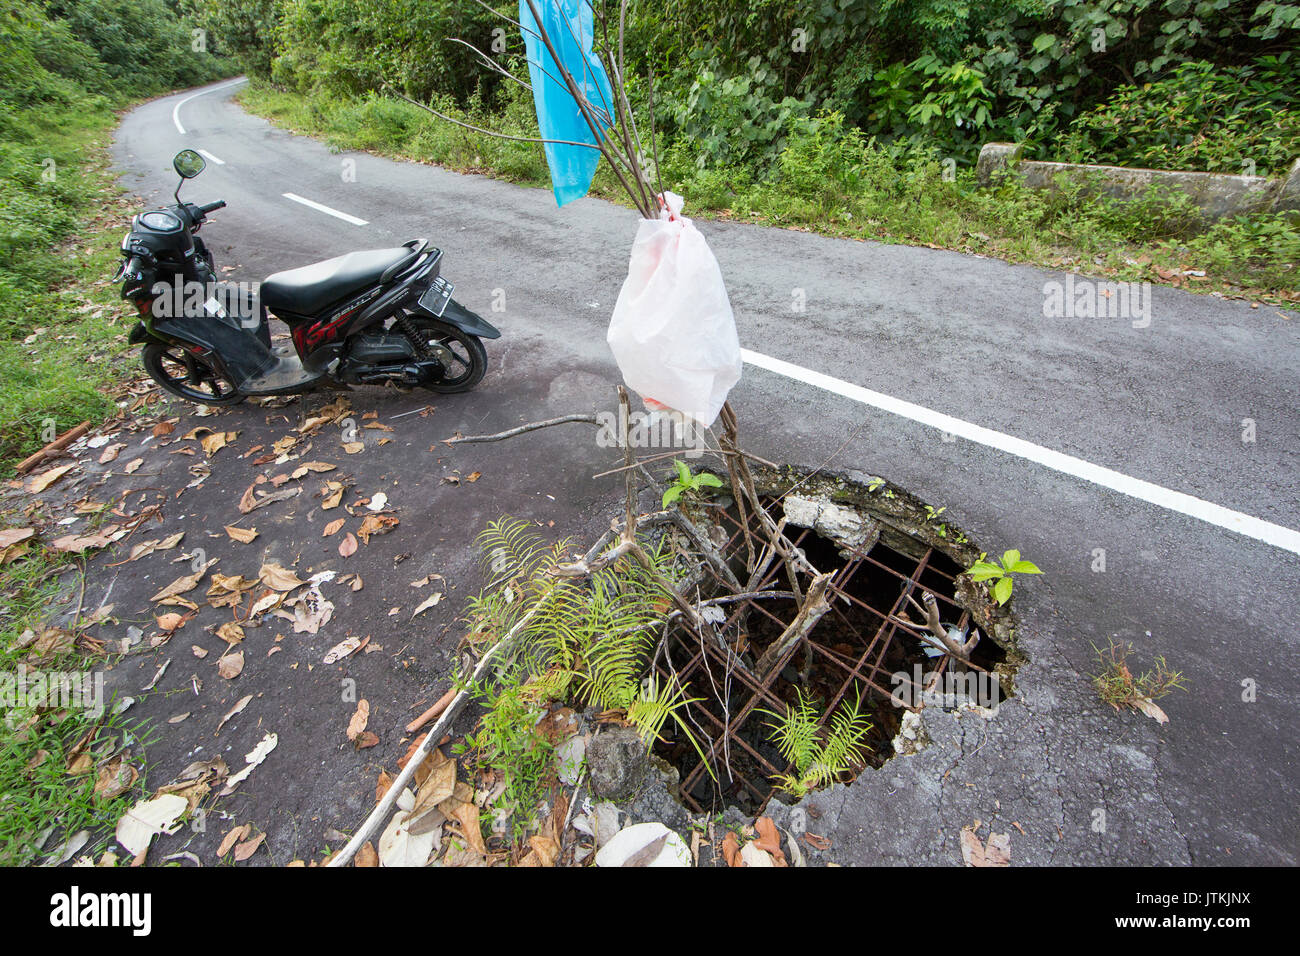 Huge pothole in road at Pulau Weh, Aceh, Indonesia - Stock Image